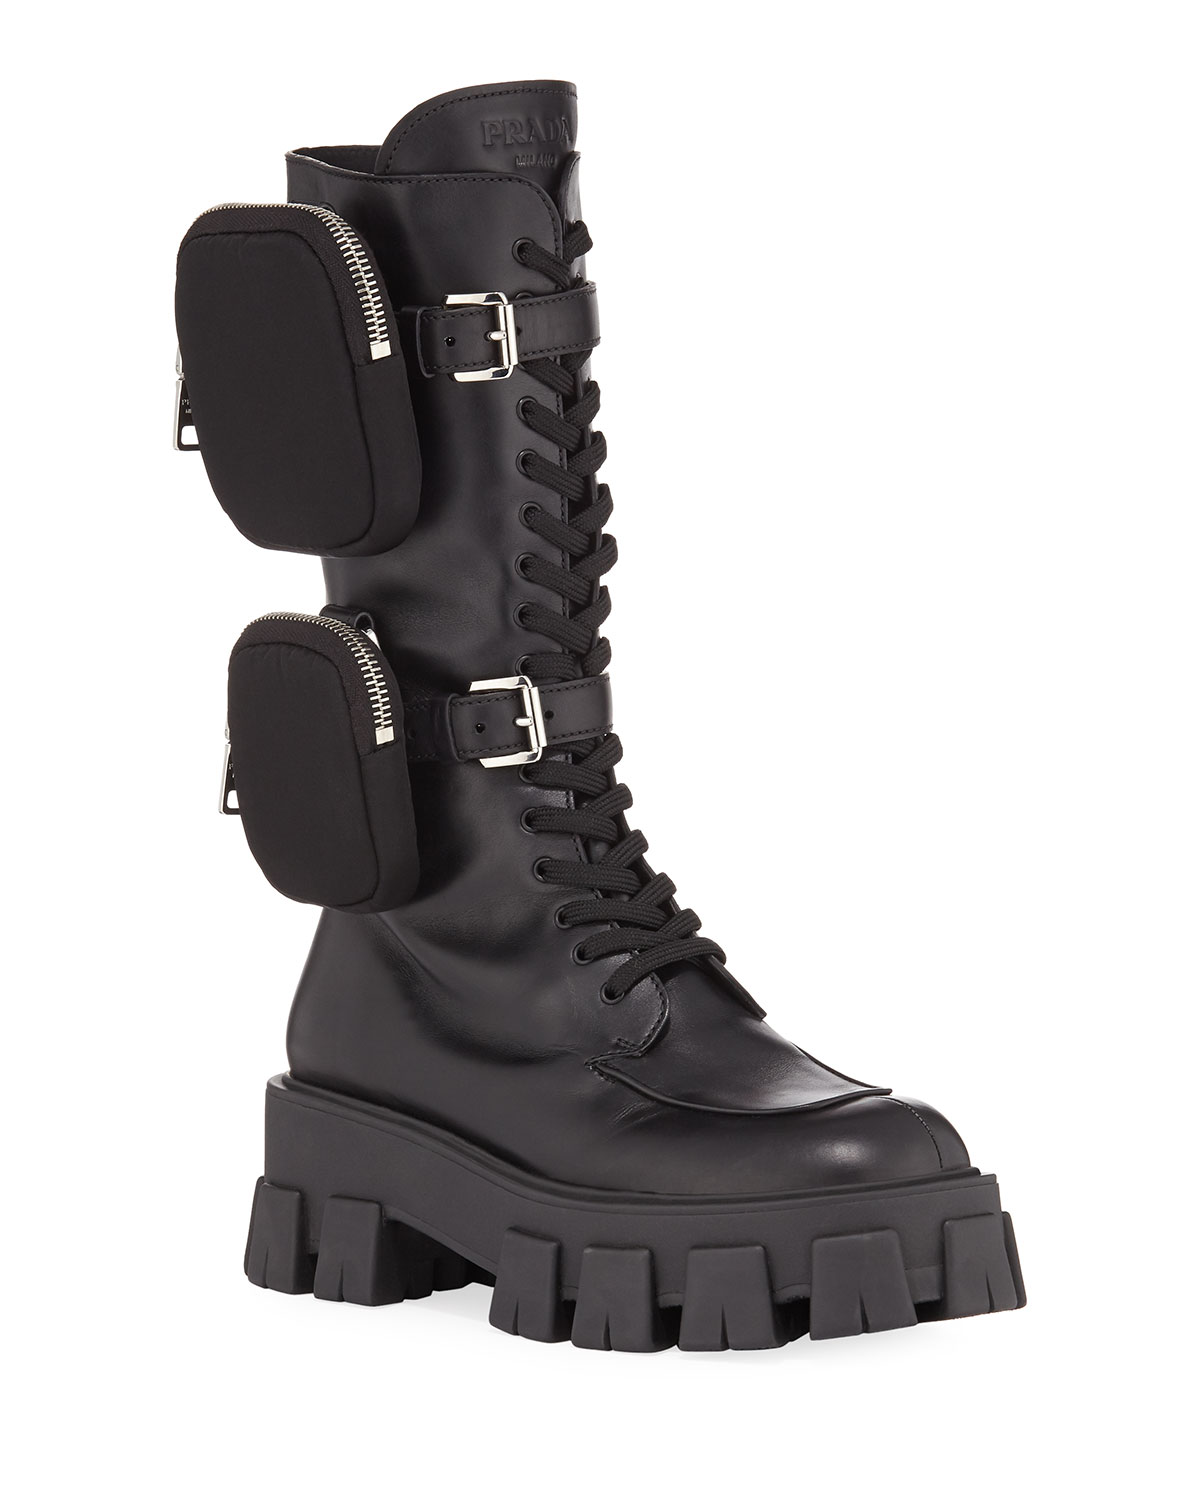 55mm Lace-Up Zip Pouch Platform Moto Boots by Prada, available on neimanmarcus.com Kendall Jenner Bags Exact Product